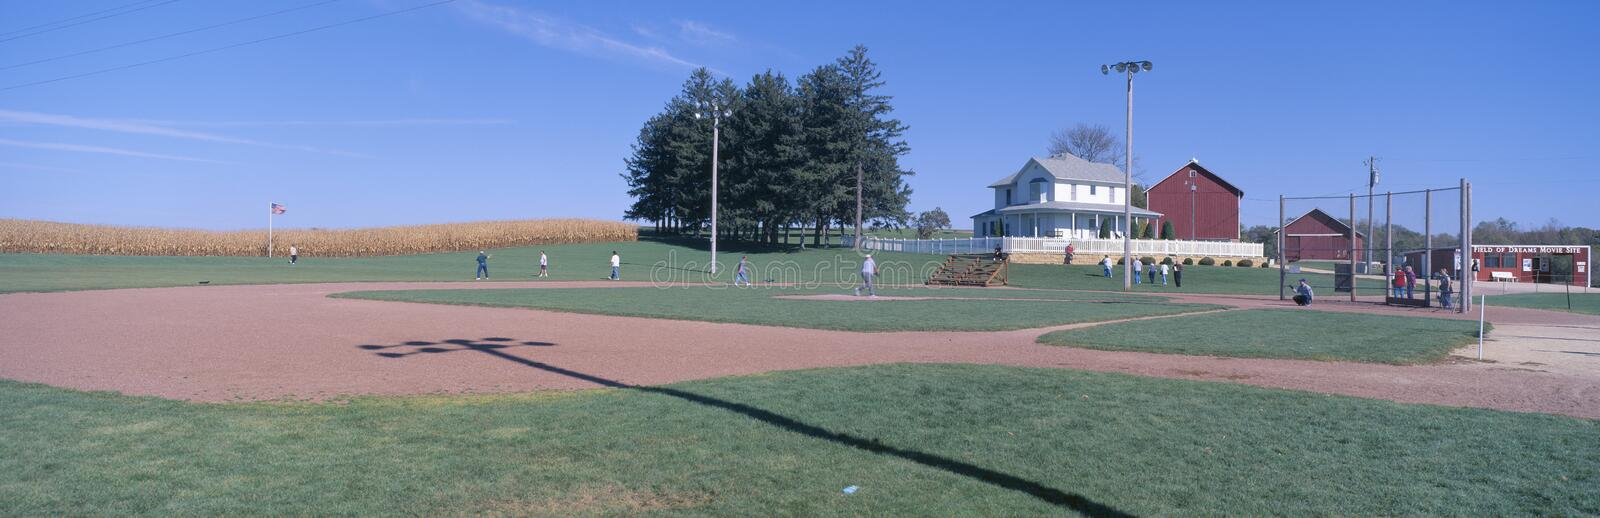 Field of Dreams movie set stock images